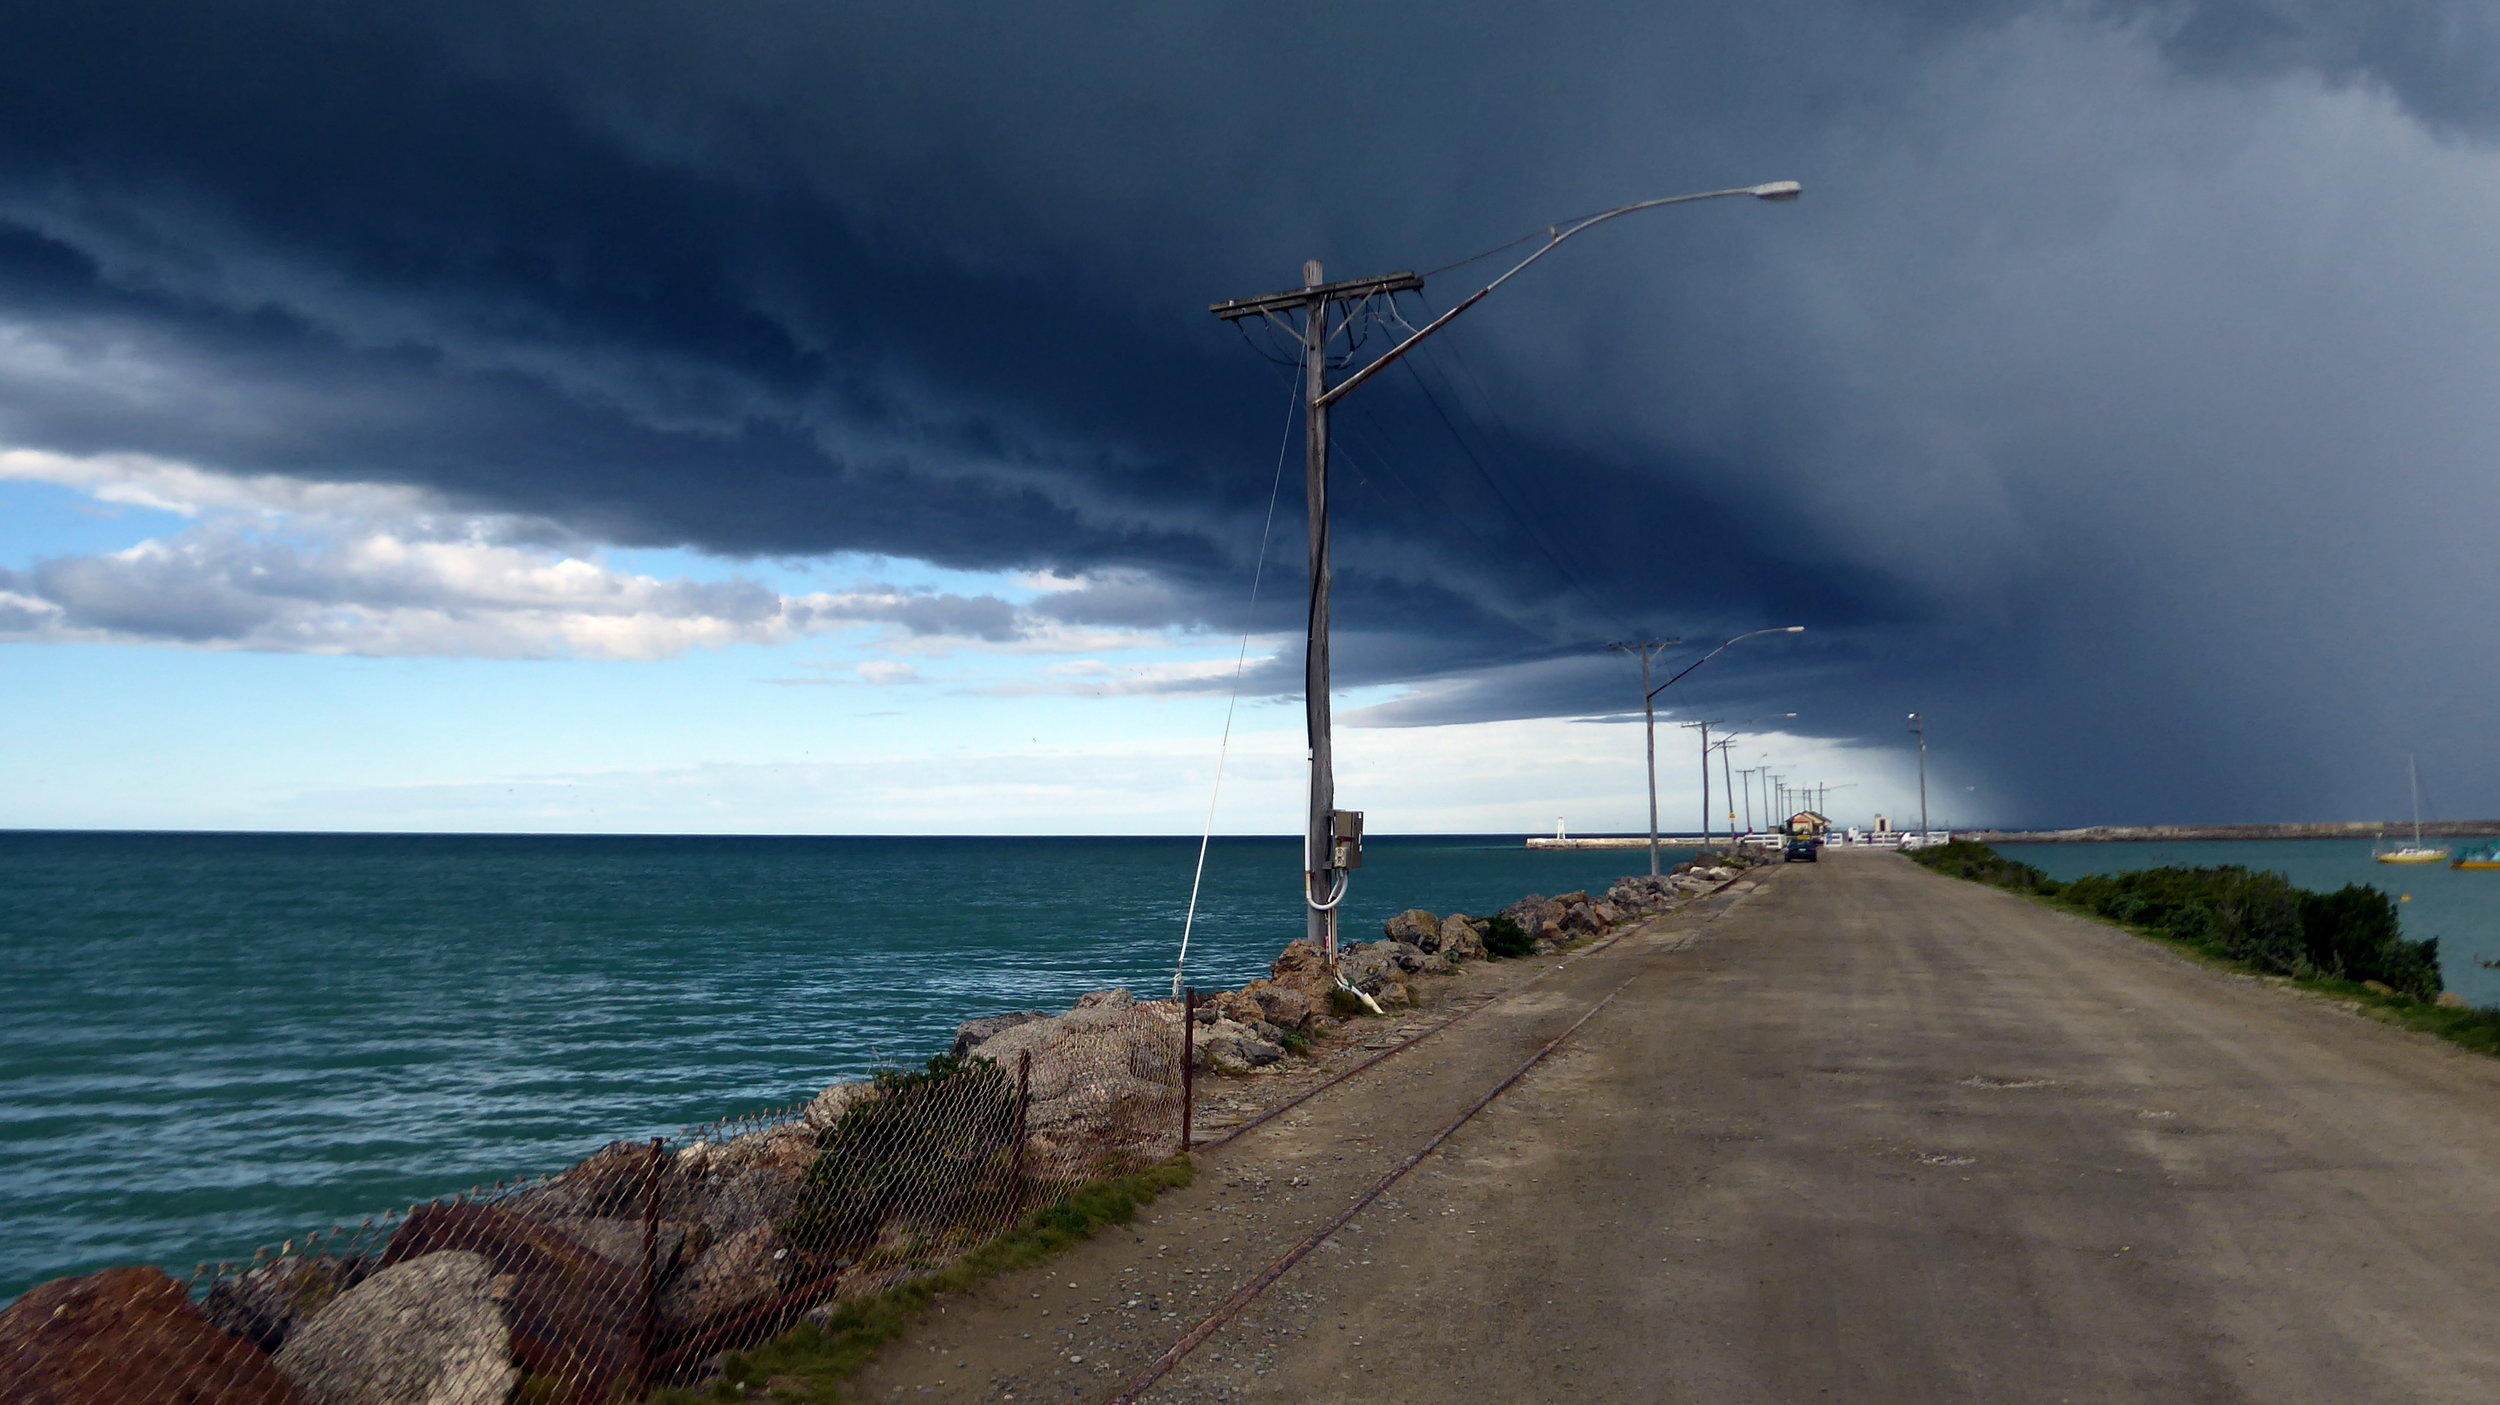 The view along Holmes Wharf. The weather can change very quickly - a real hazard to shipping